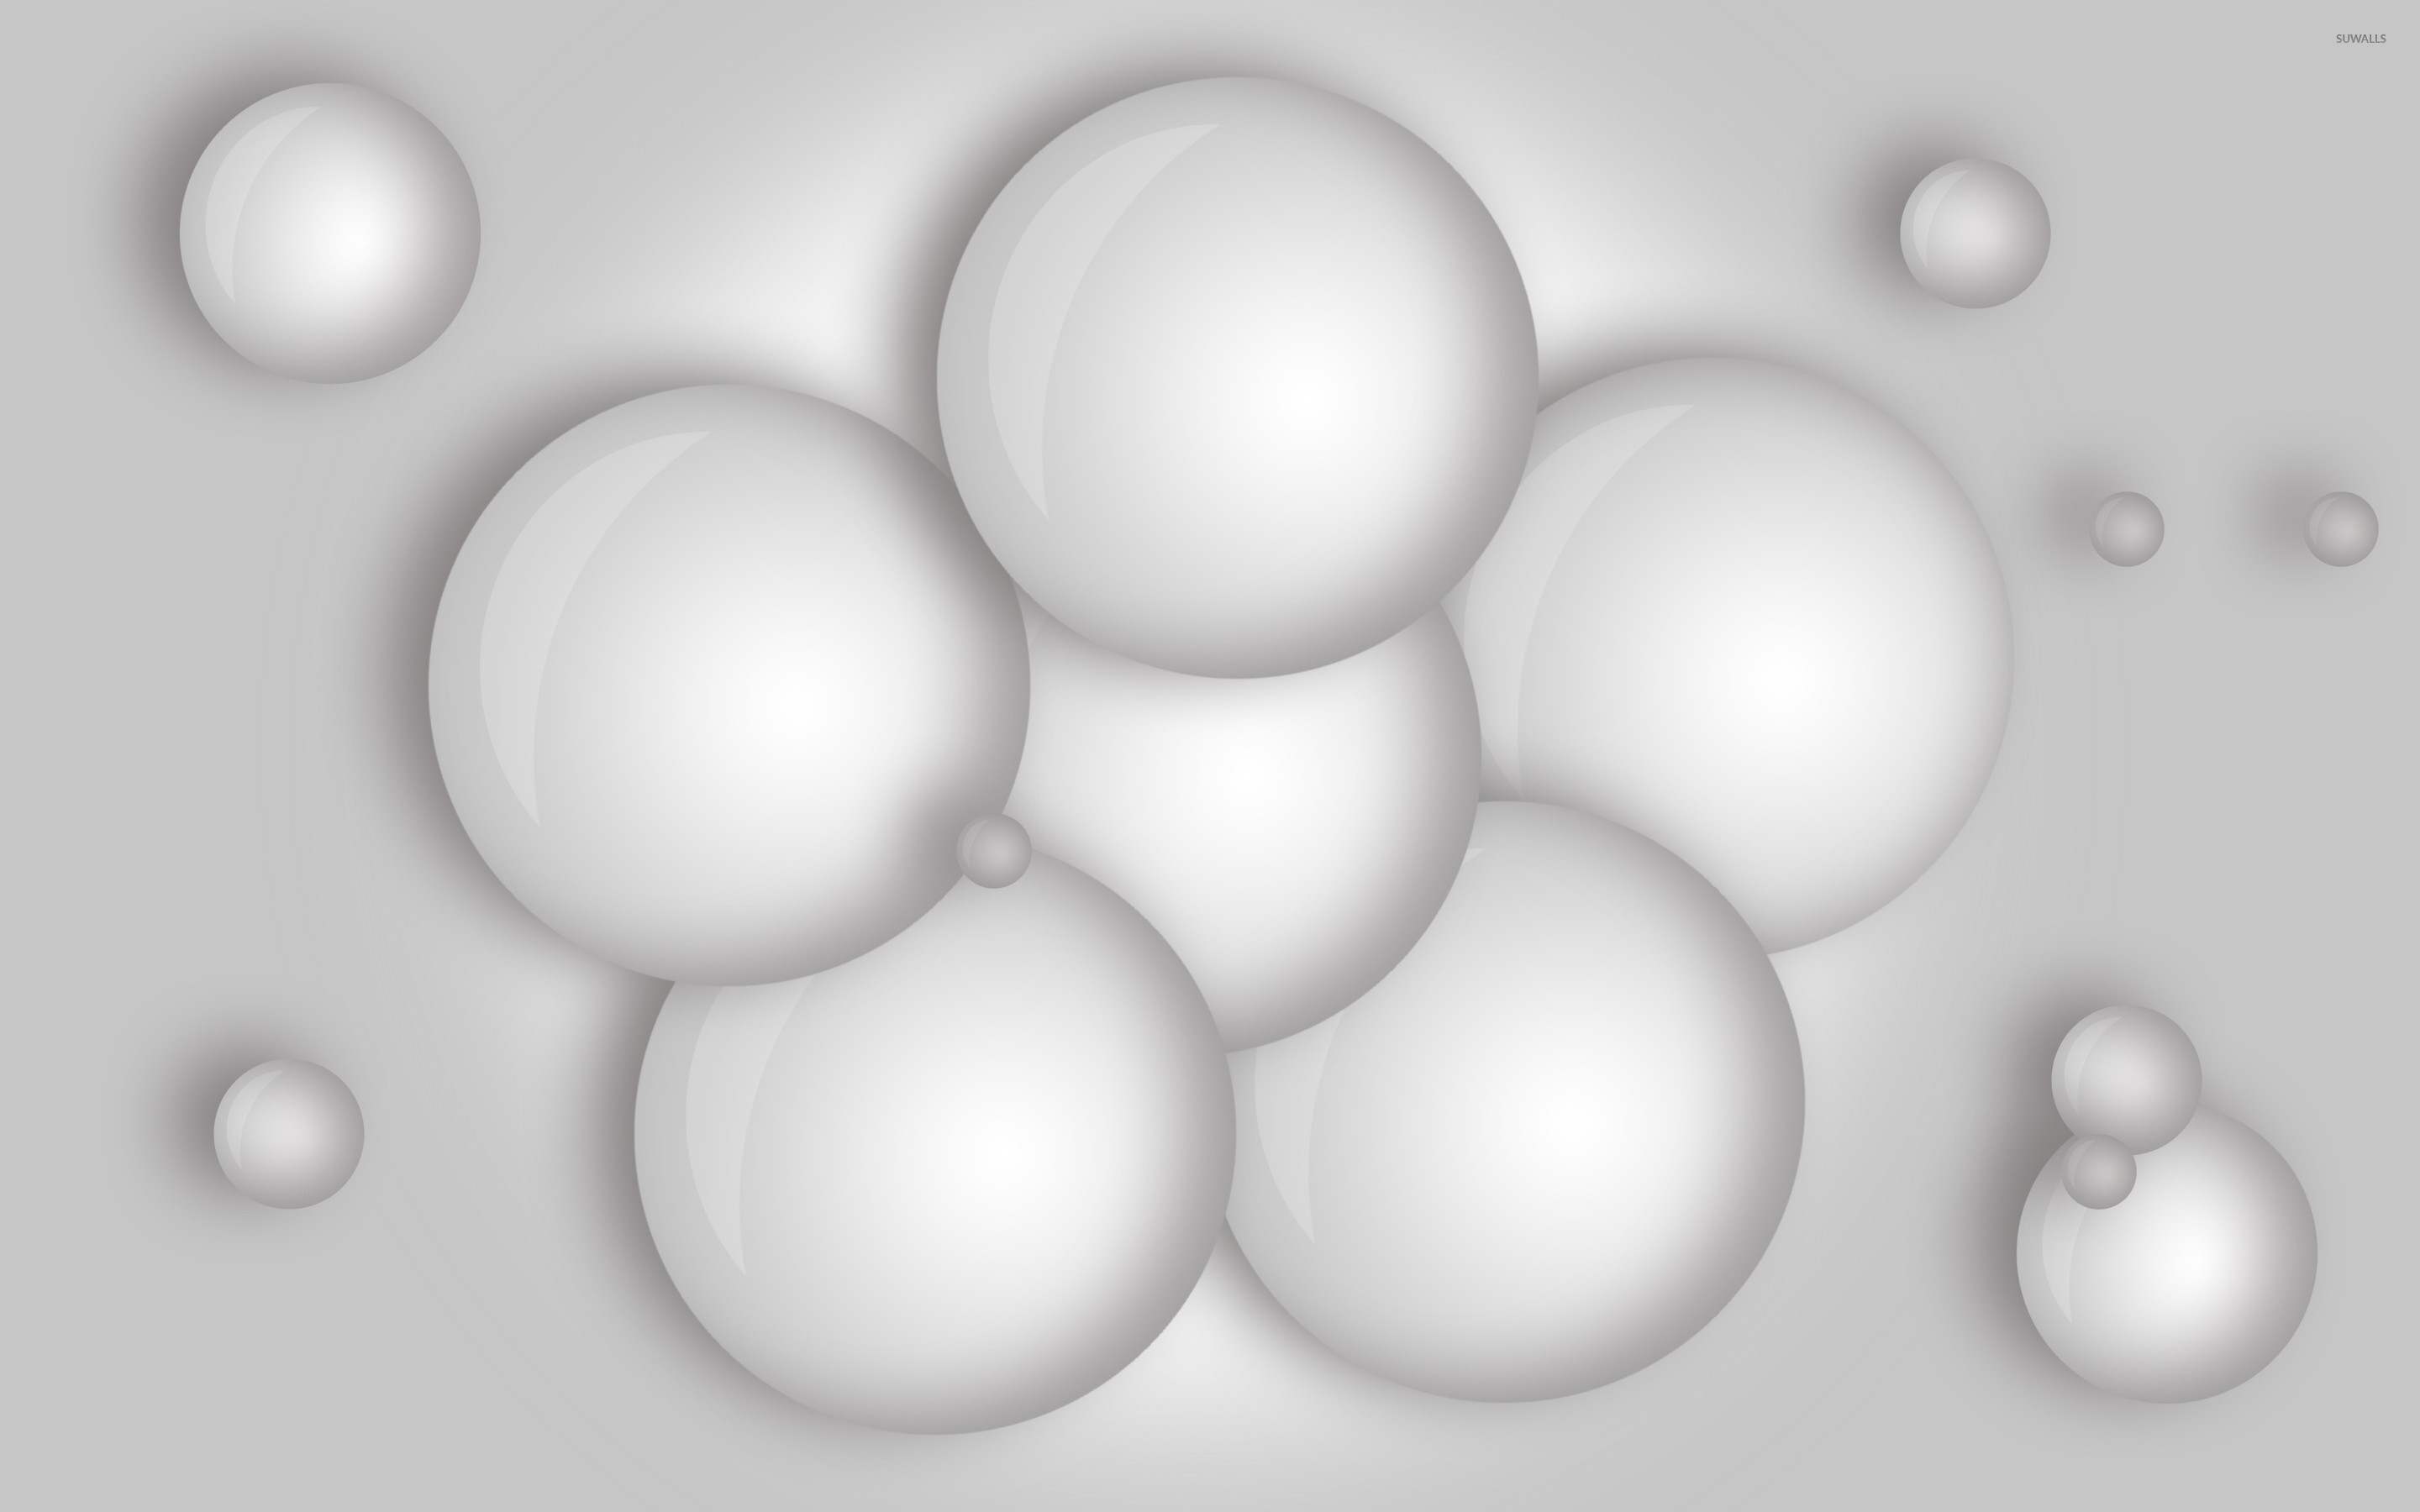 White balls wallpaper 3d wallpapers 23131 for Wallpaper 3d white